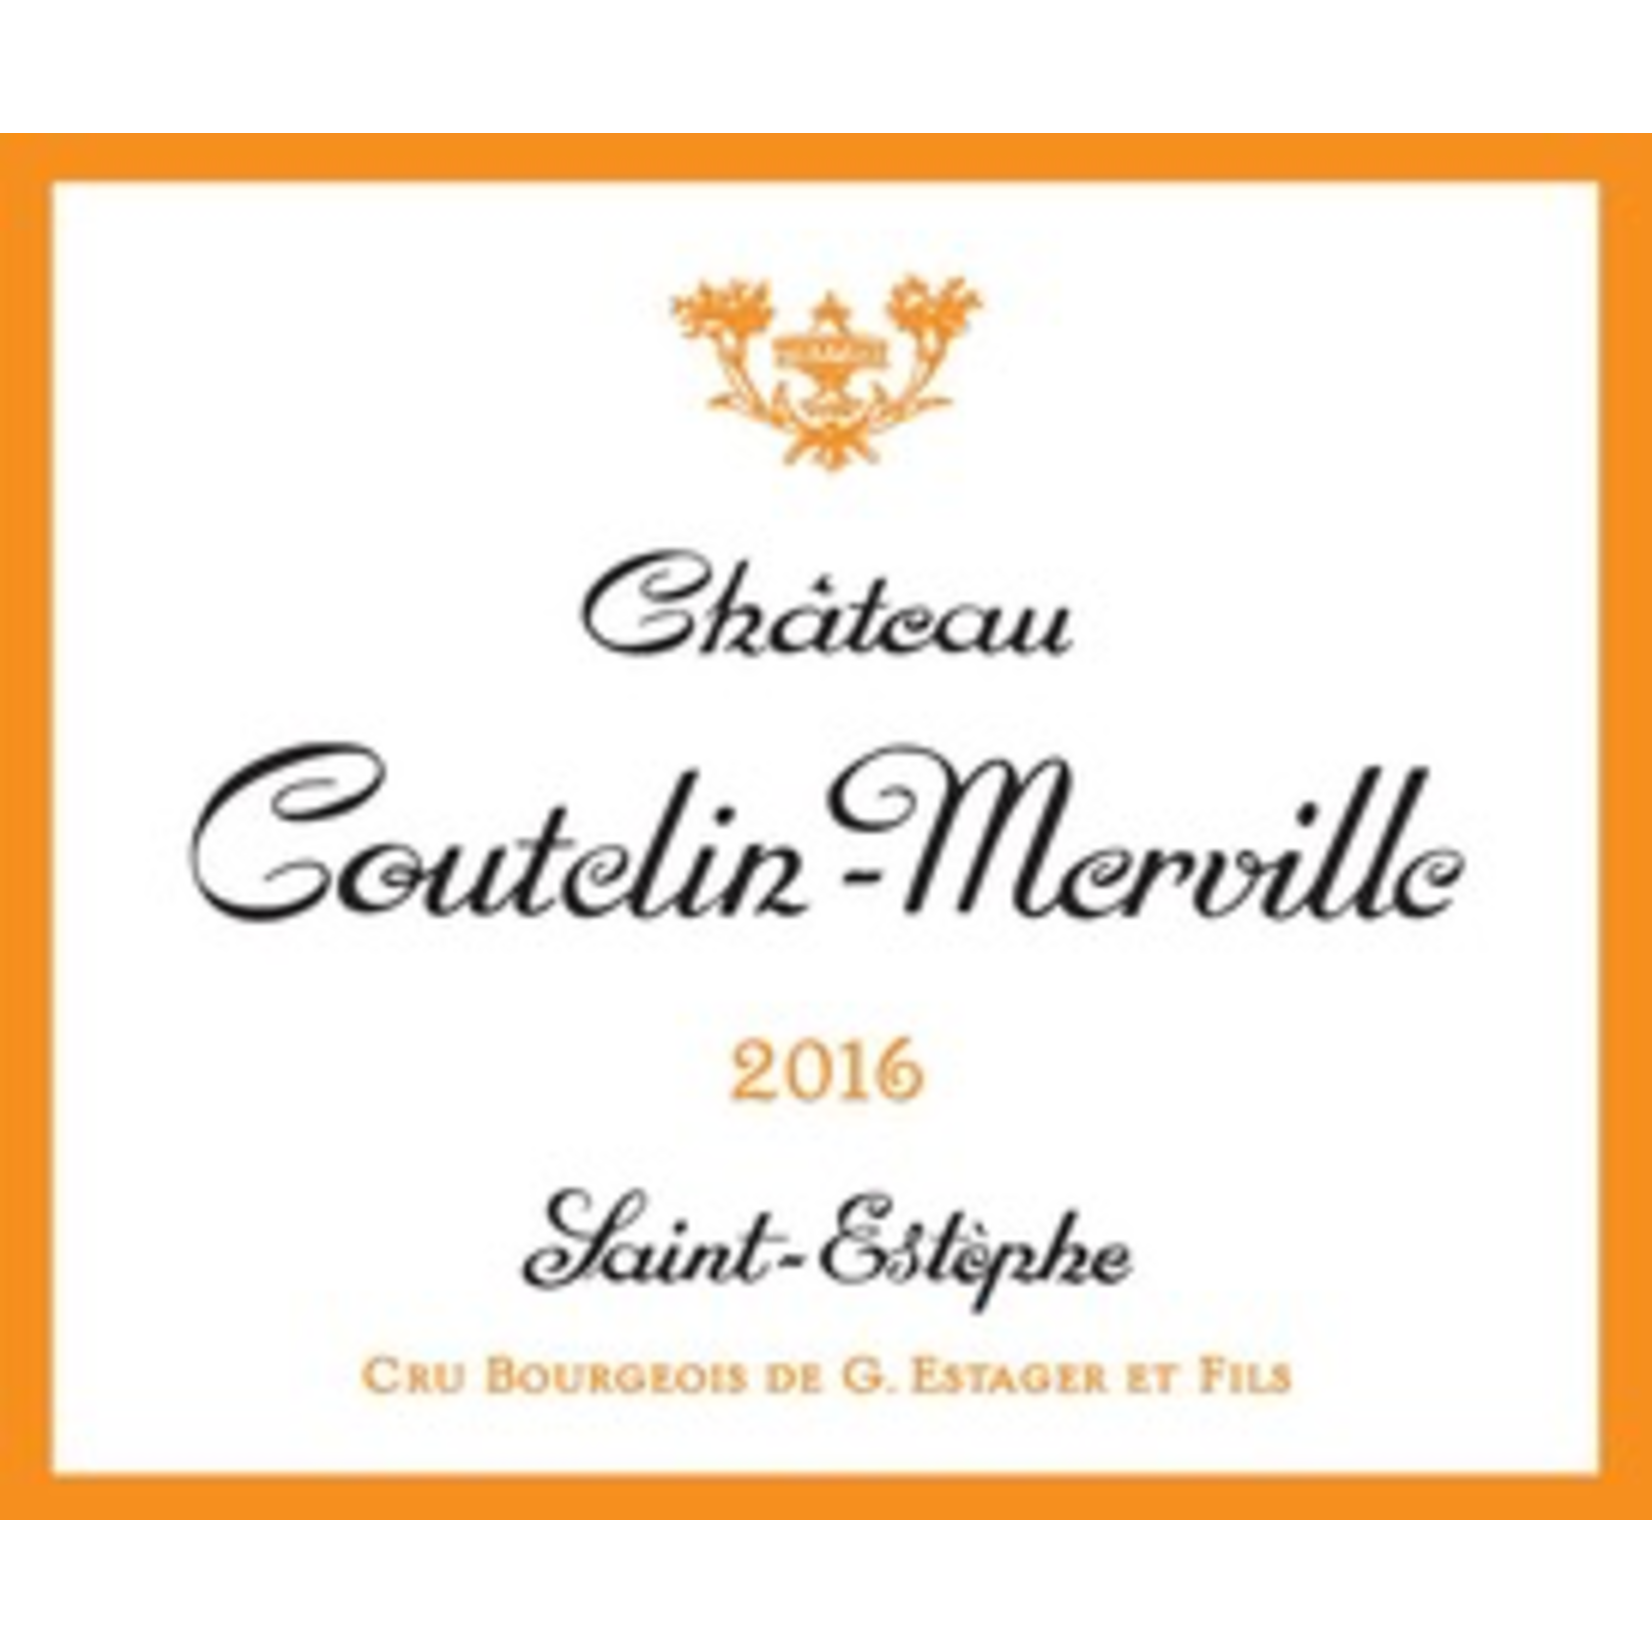 Wine Chateau Coutelin Merville 2016